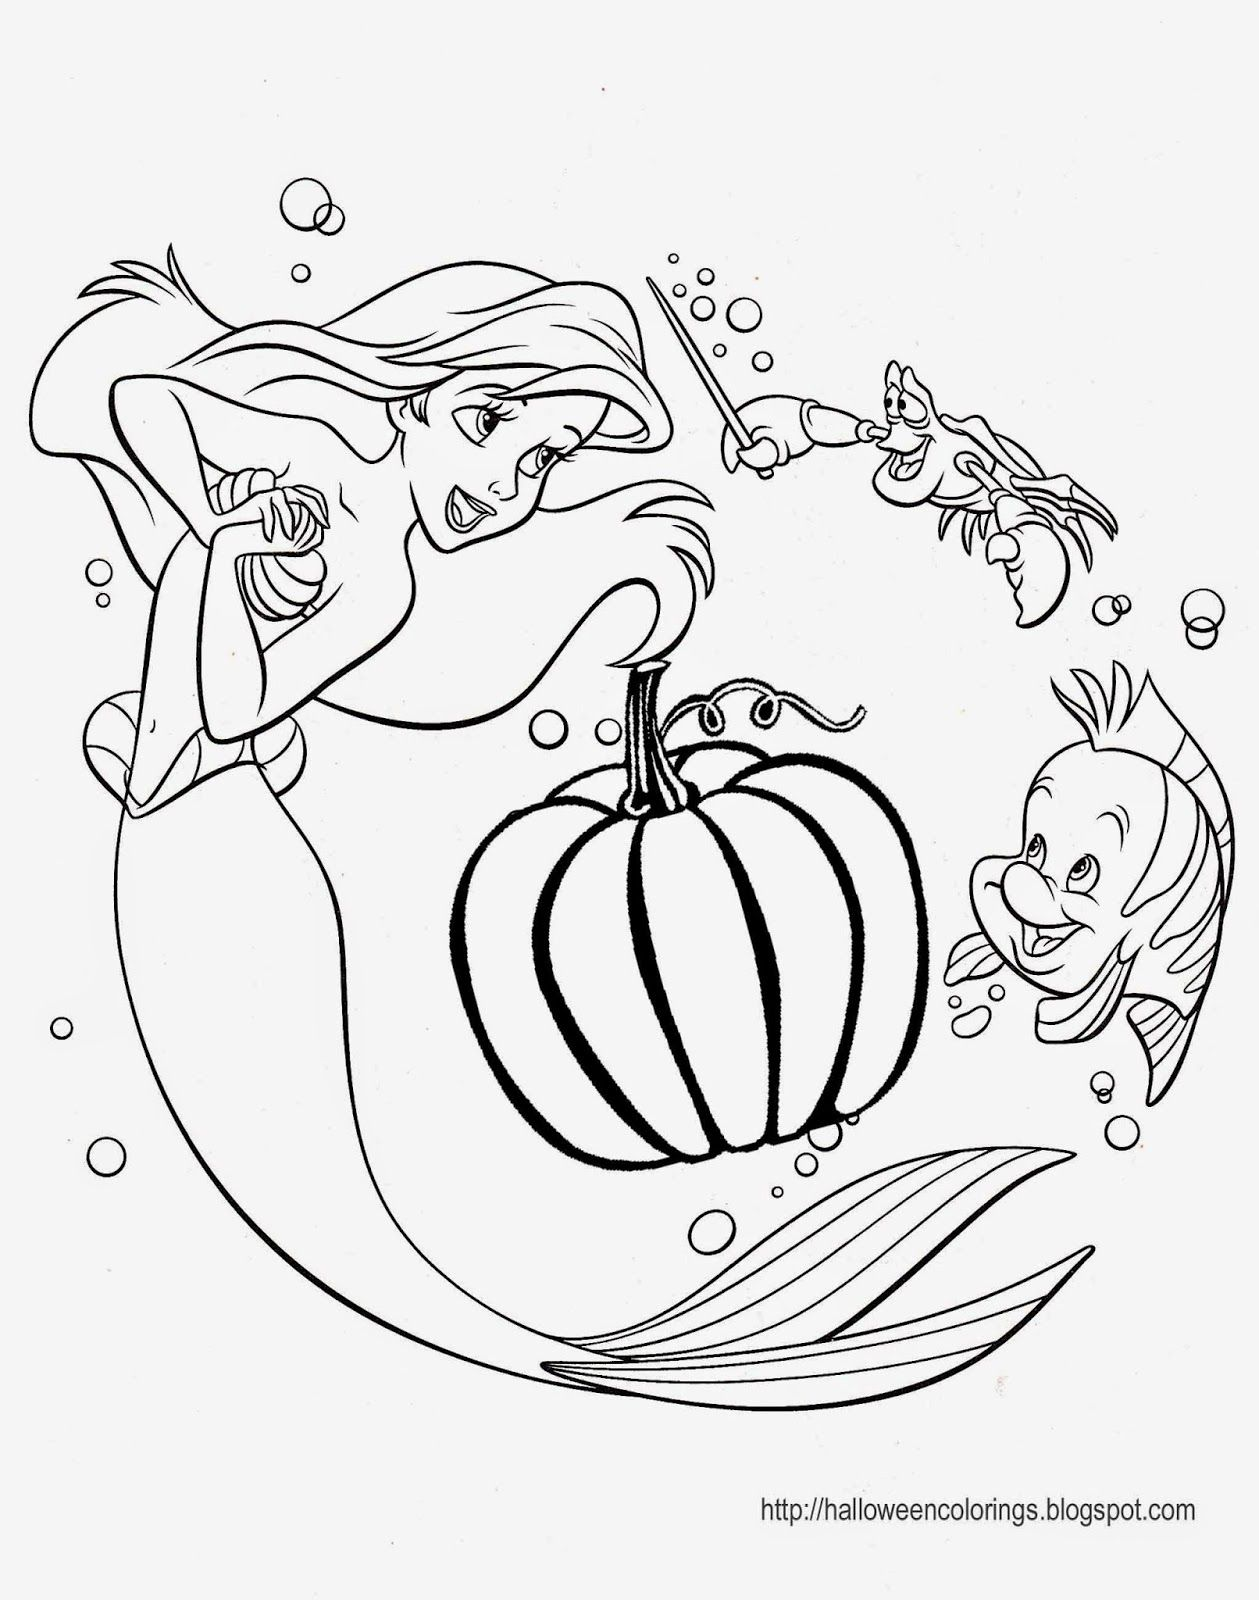 HALLOWEEN COLORING PAGES Coloring Pages PDF Coloring Home